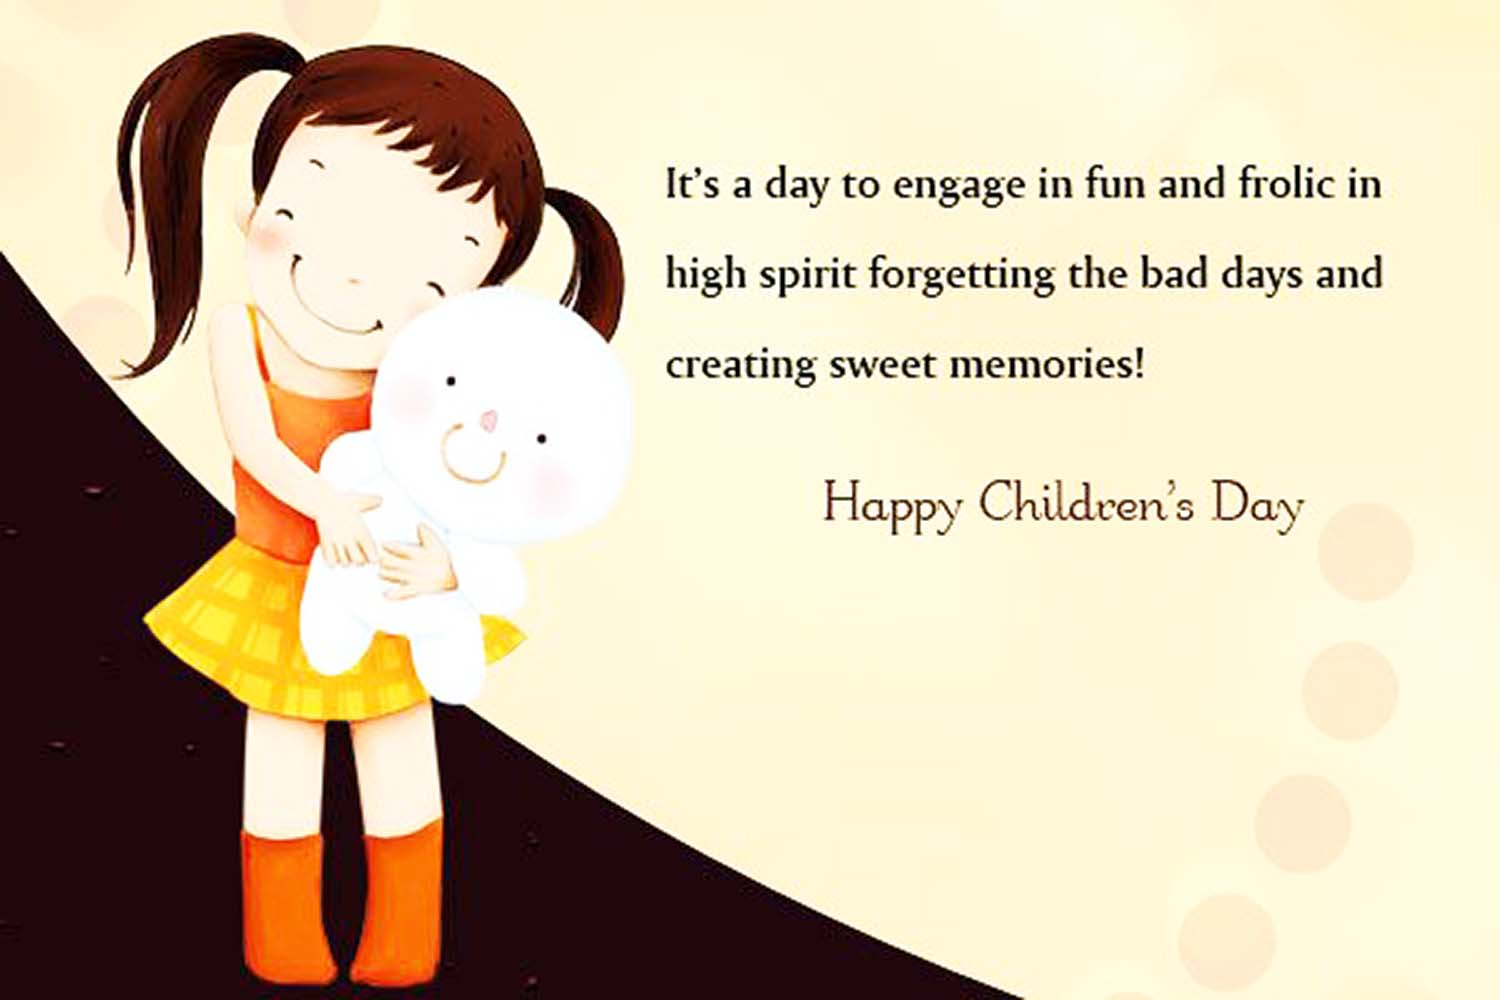 small thoughts on children's day